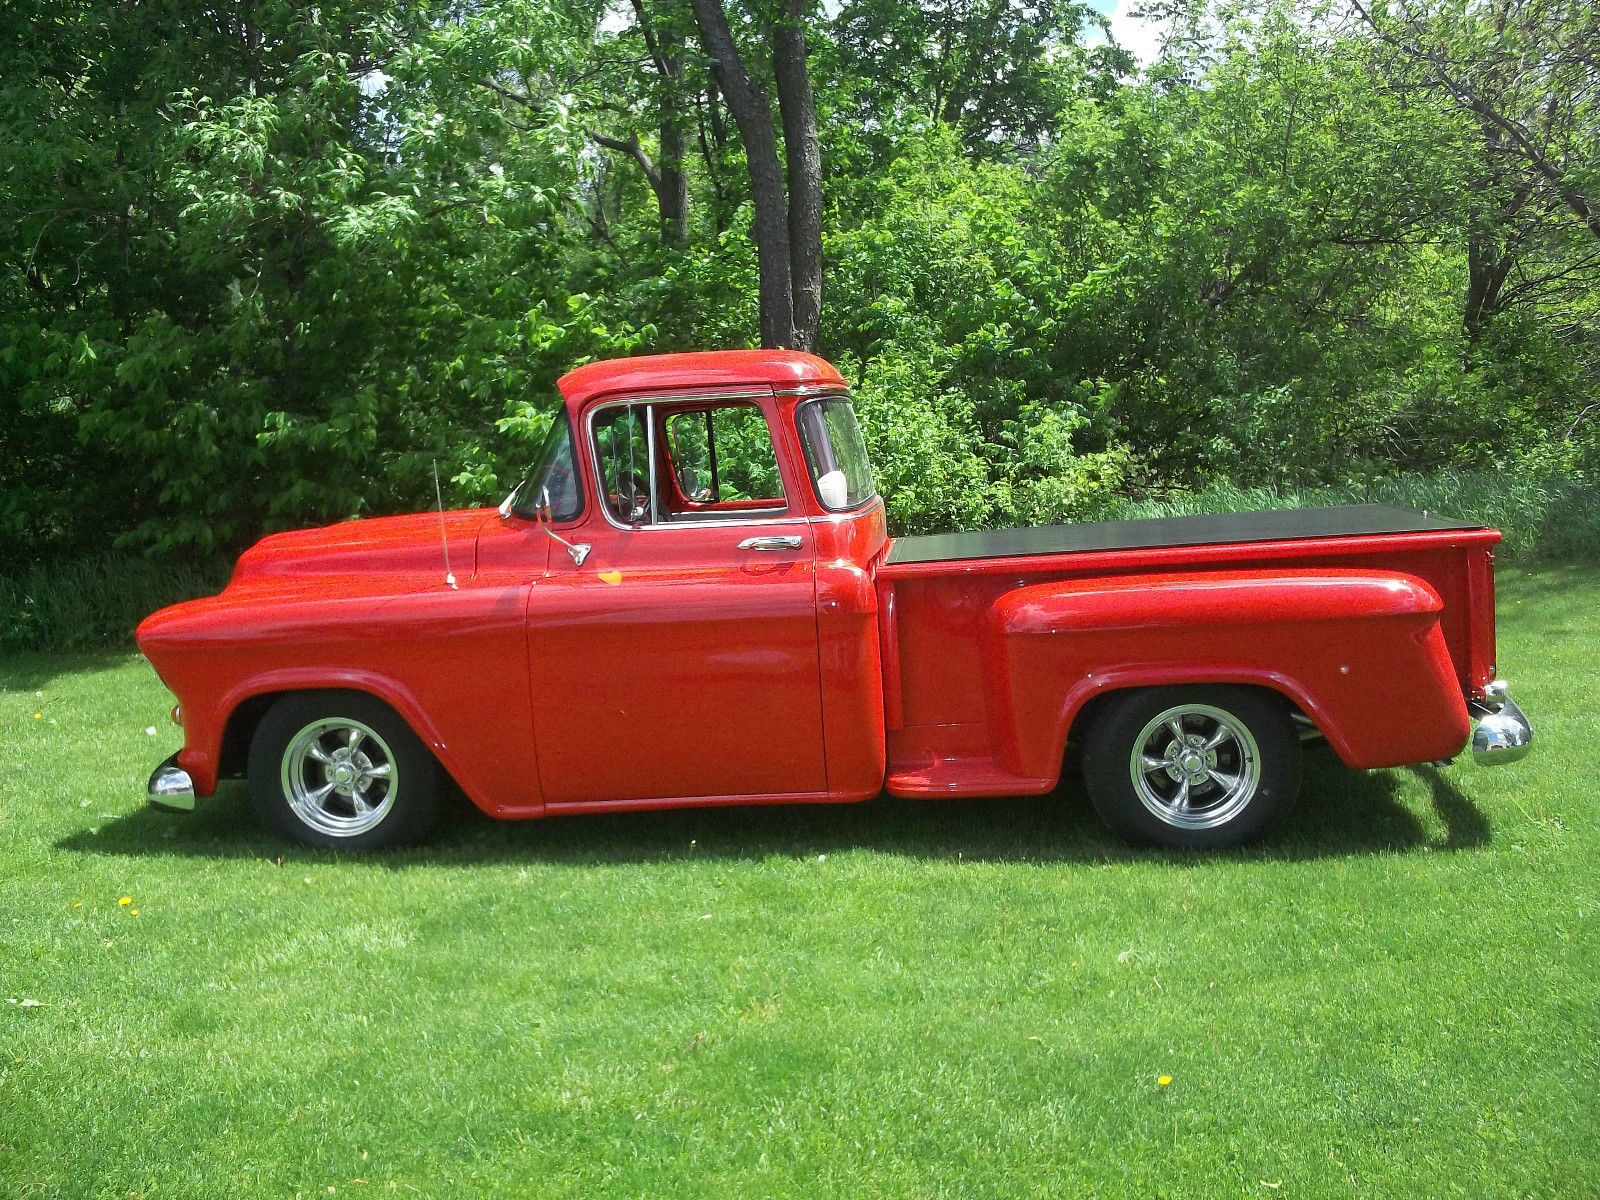 1957 chevy truck ls1 pro touring hot rat rod ls 1 swap for 1957 chevy big window truck for sale